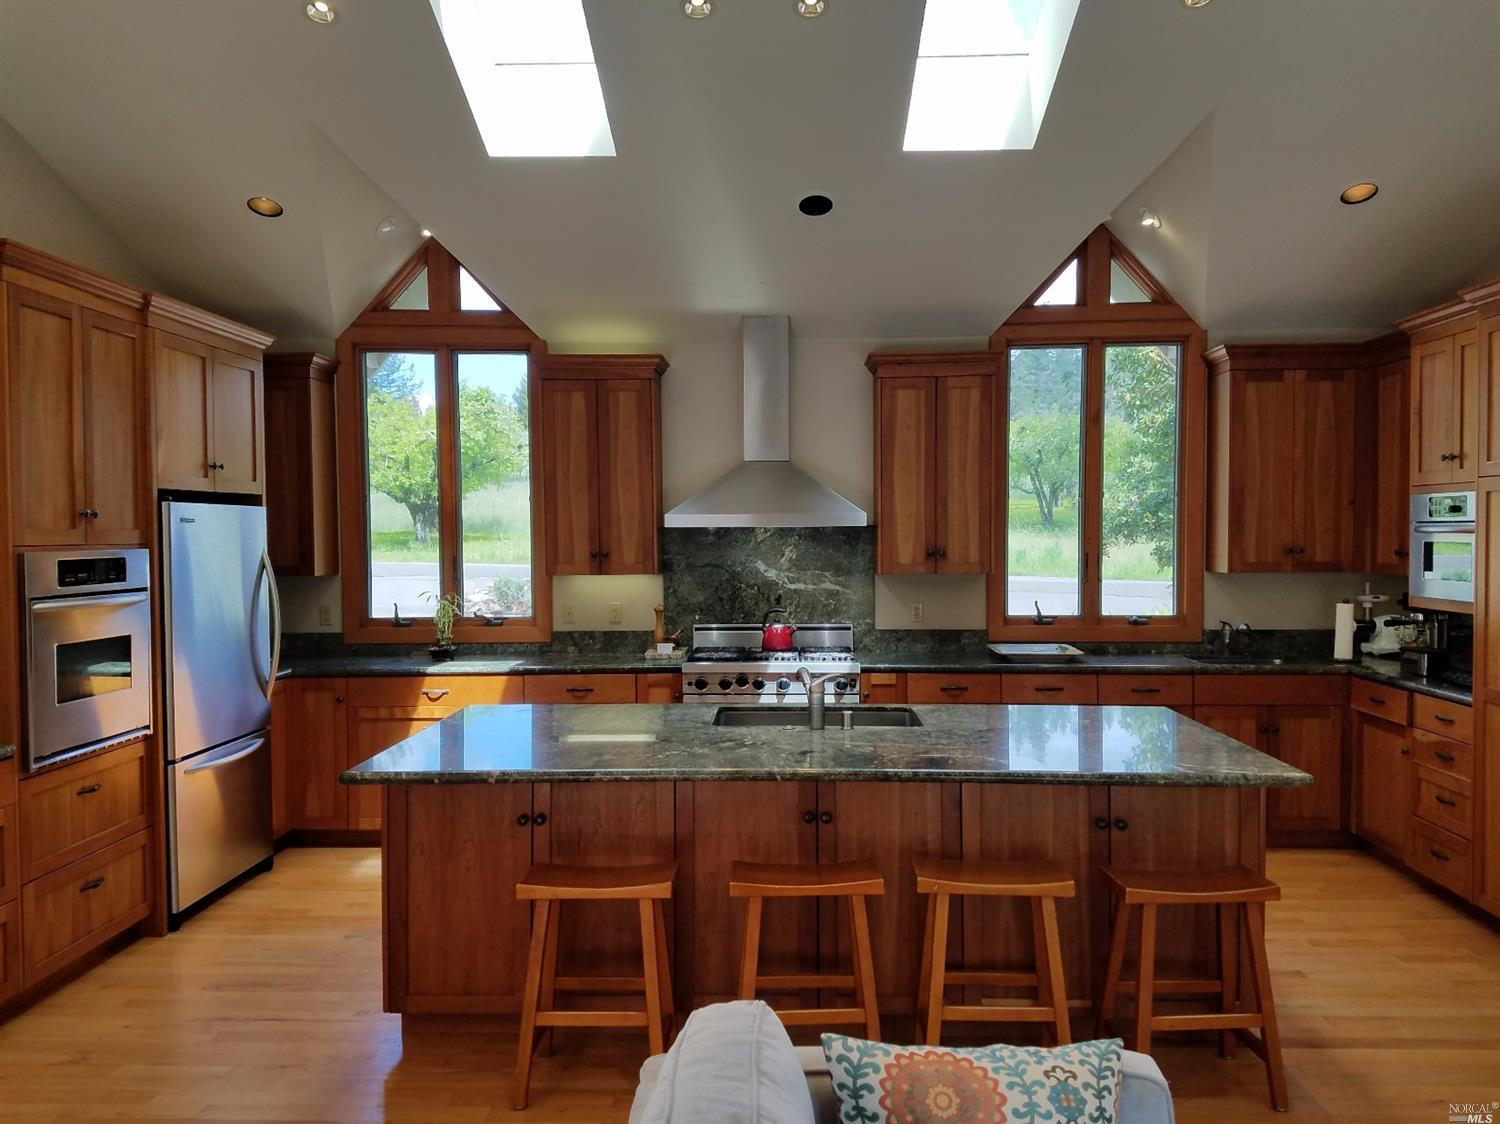 Additional photo for property listing at 12649 Fiori Lane  SEBASTOPOL, CALIFORNIA 95472